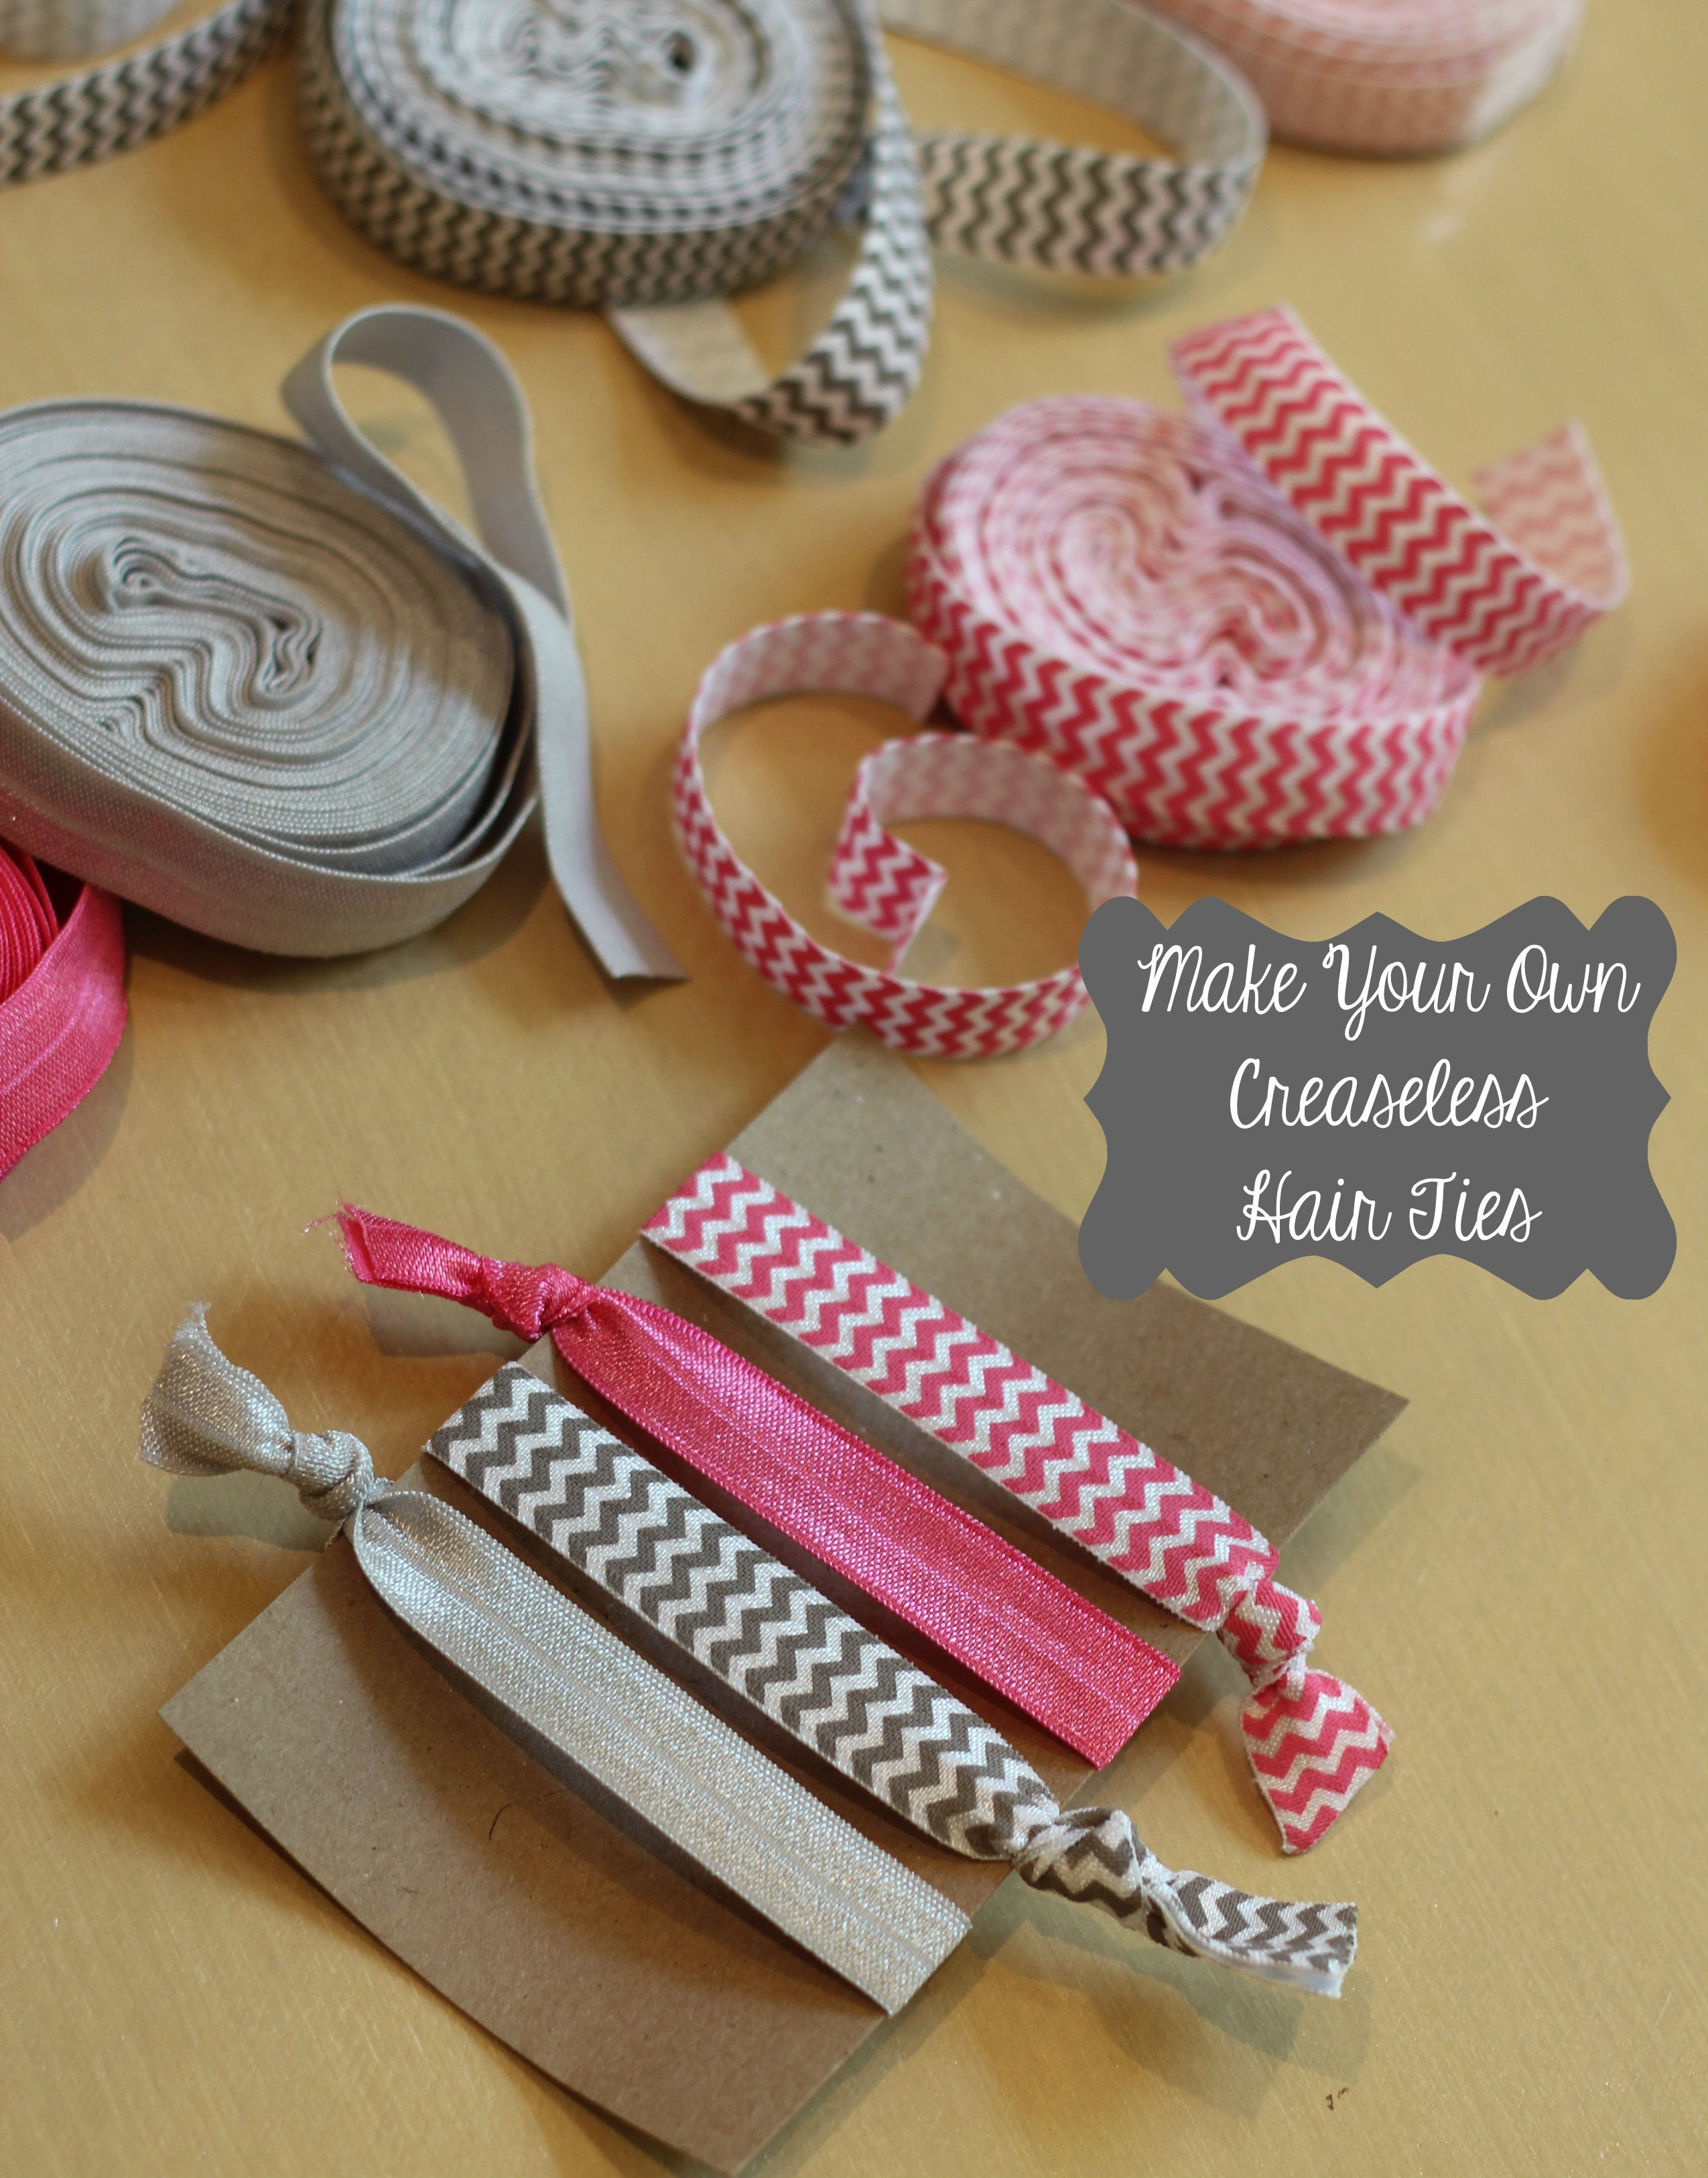 DIY creaseless hair ties  77a232960e7